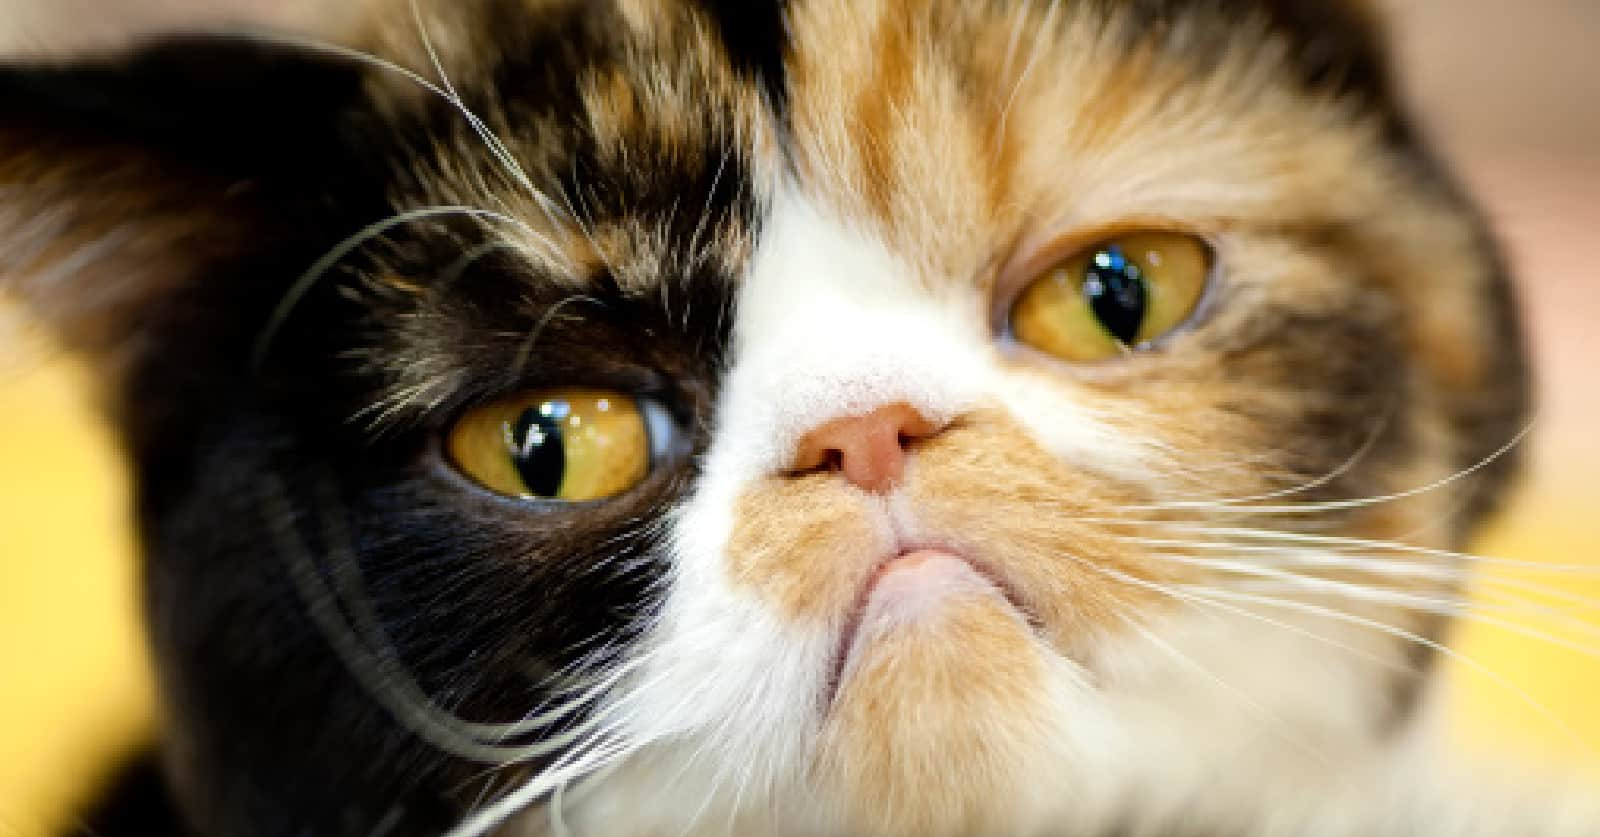 is single cat syndrome a real thing?